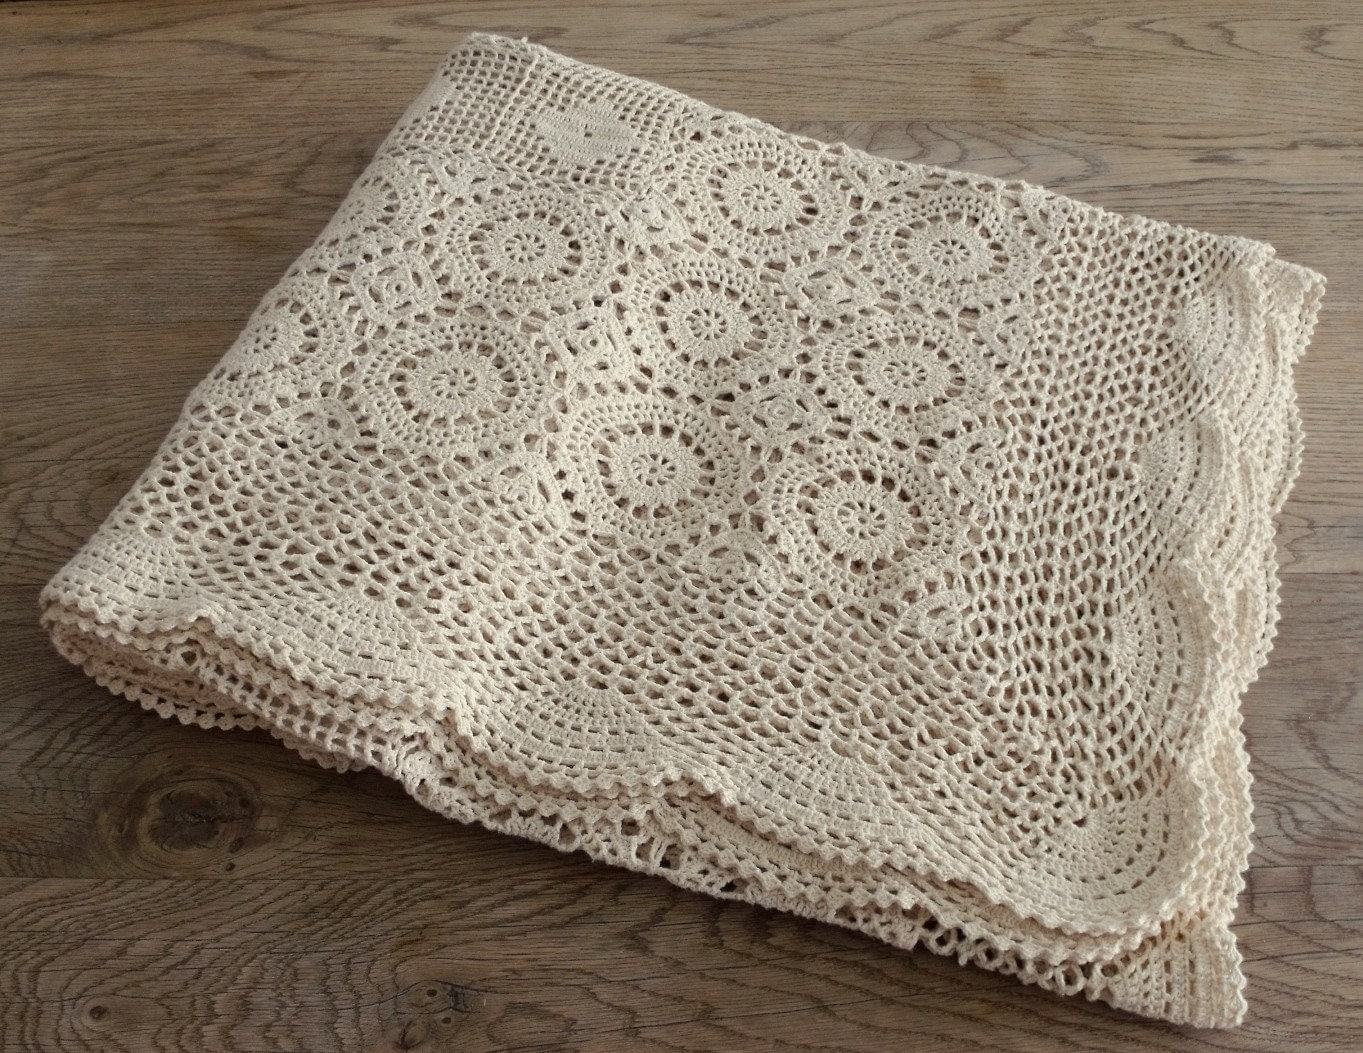 Crochet Bedspread Patterns : Creamy Vintage Crochet Bedspread by robinseggbleunest on Etsy